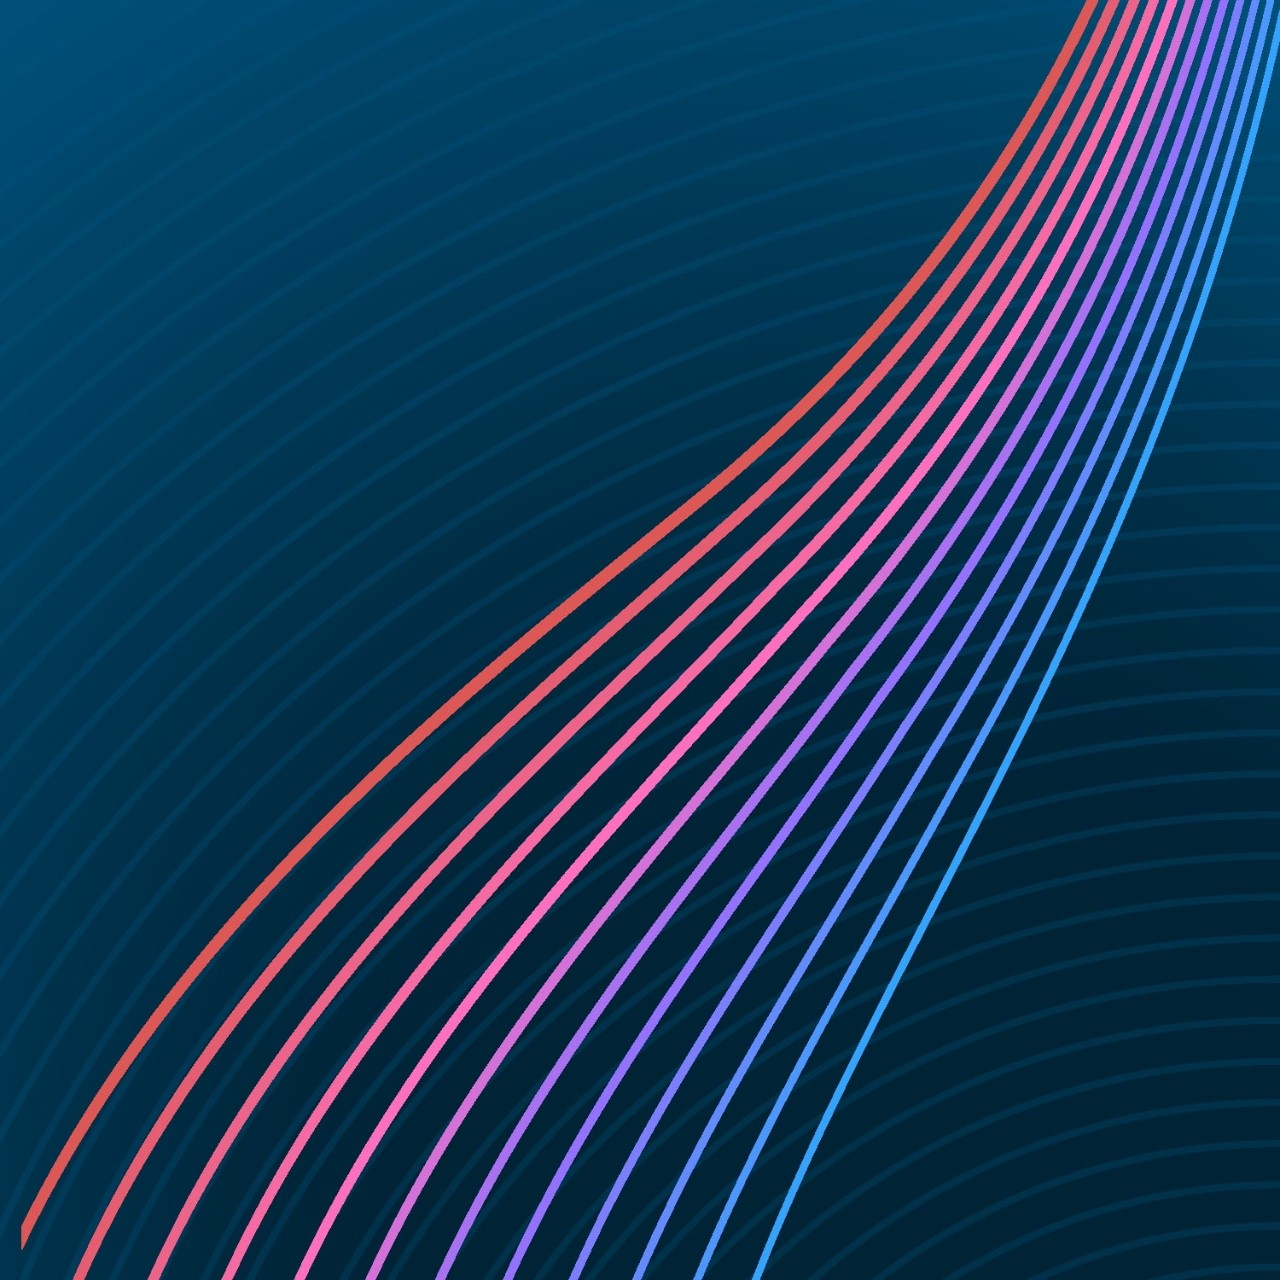 Abstract Art Colorful Lines Swirl